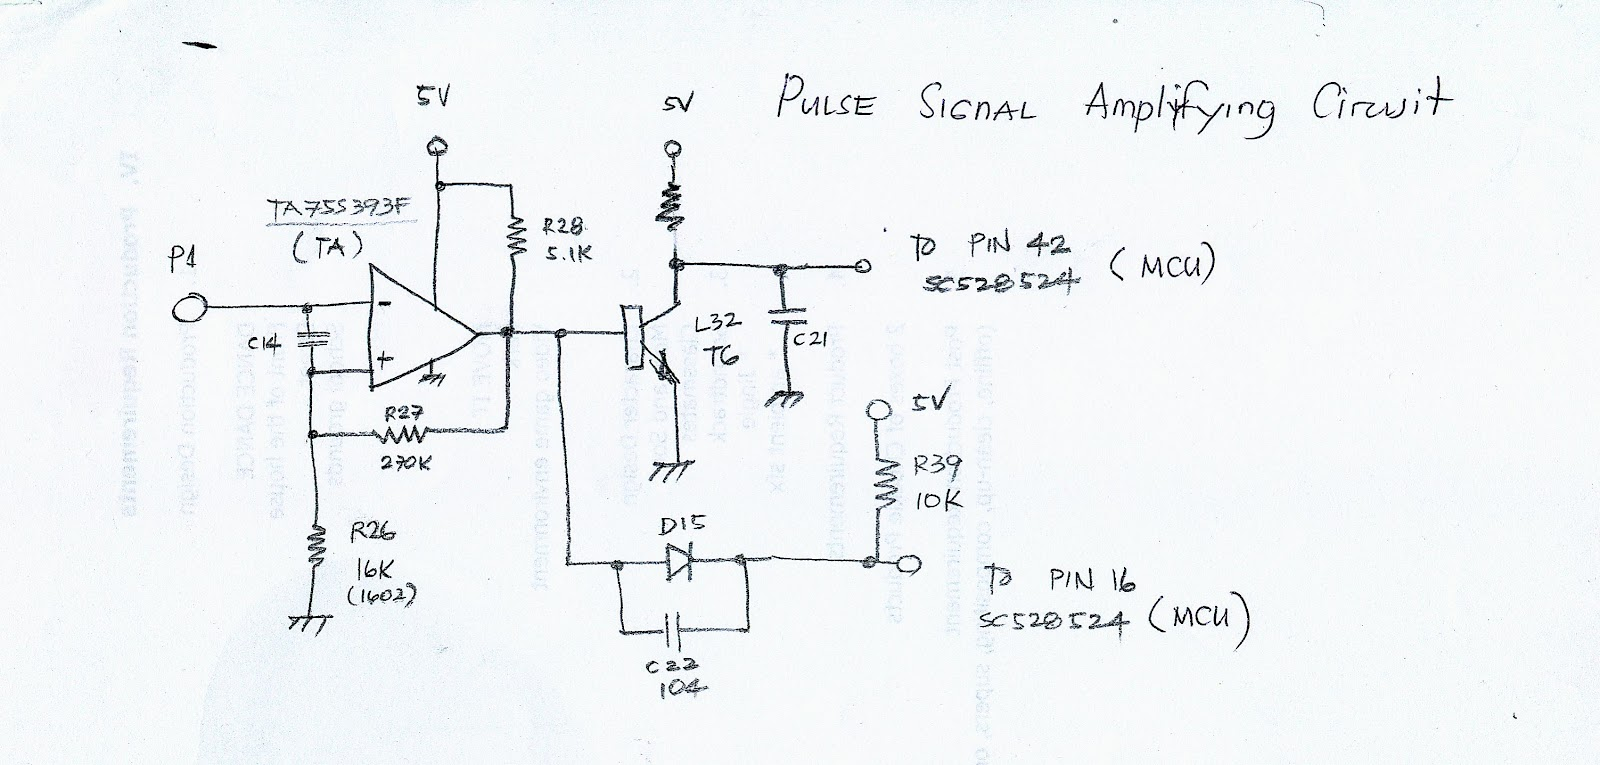 Pulse Signal Amplifying circuit